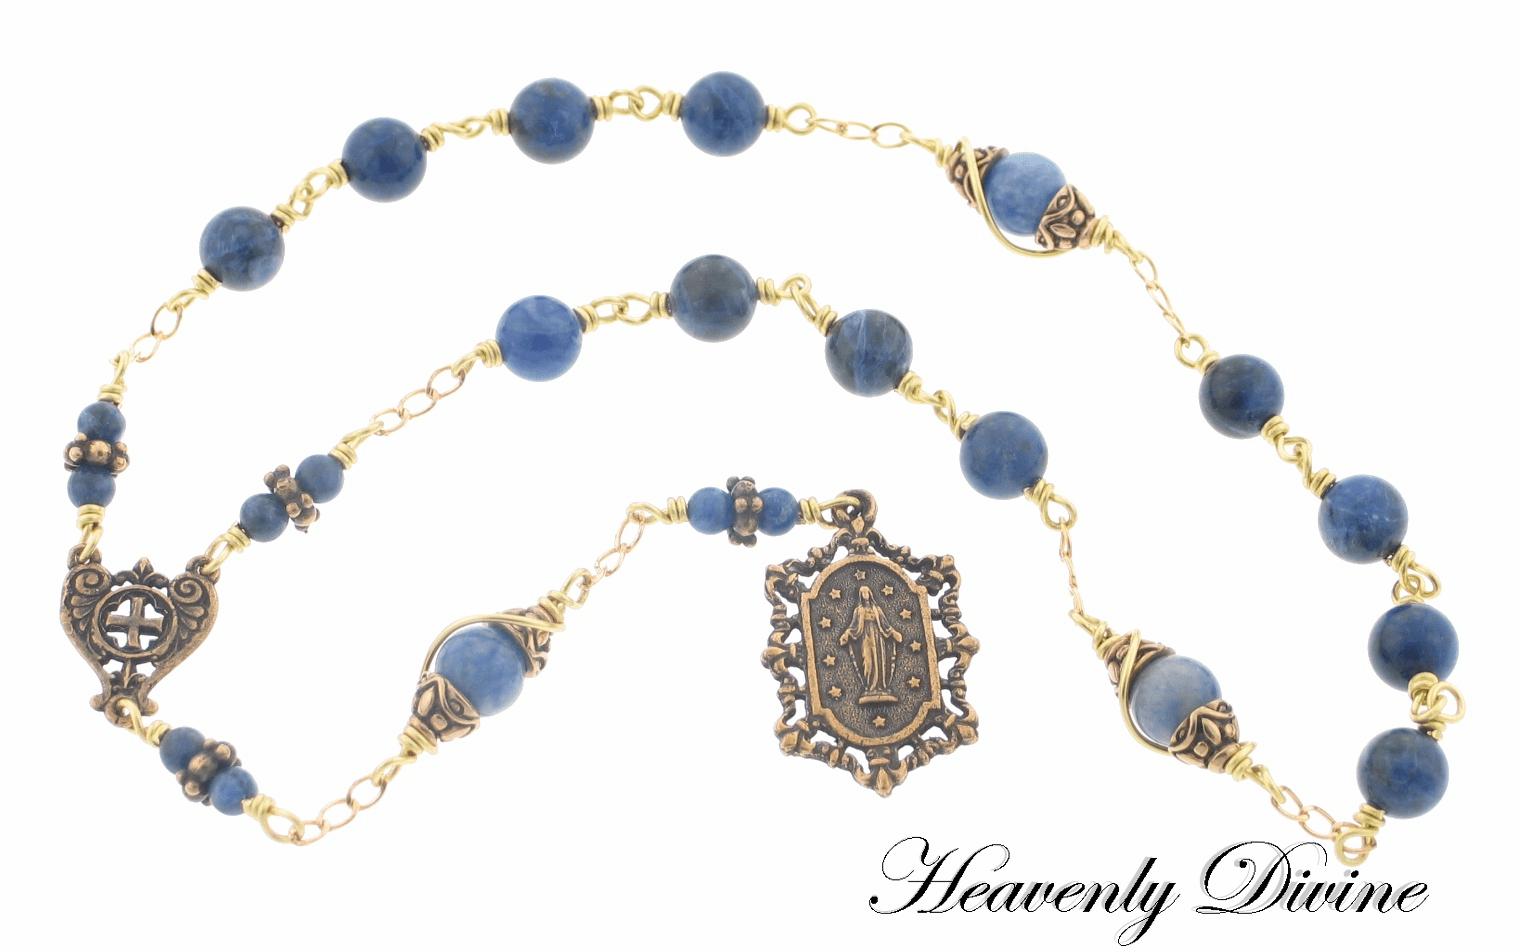 Handmade Beads of the Immaculate Conception Chaplet by Heavenly Divine